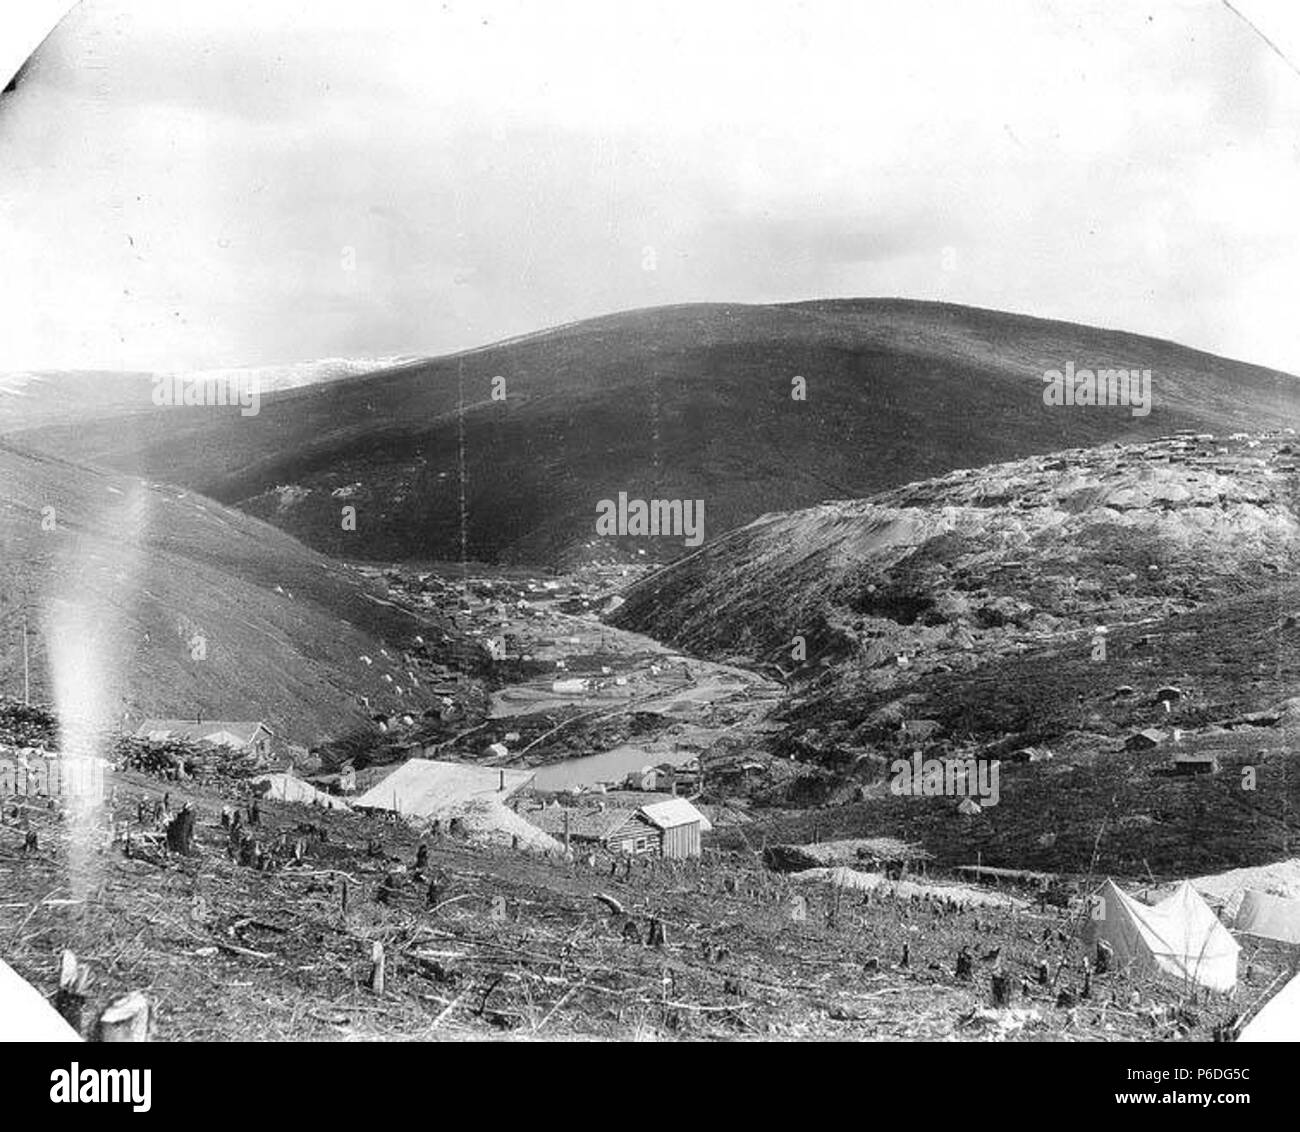 . English: Gold Hill, Forks and mining claims from Cheechako Hill, May 22, 1900 . English: Caption with image: No. 44A, Gold Hill and Forks from Chechaco Hill, May 22, 1900 PH Coll 35.554 Klondike Gold Rush Subjects (LCTGM): Tents--Yukon--Cheechako Hill Subjects (LCSH): Gold mines and mining--Yukon--Cheechako Hill; Mining claims--Yukon--Cheechako Hill  . 1900 50 Gold Hill, Forks and mining claims from Cheechako Hill, May 22, 1900 (SARVANT 123) - Stock Image